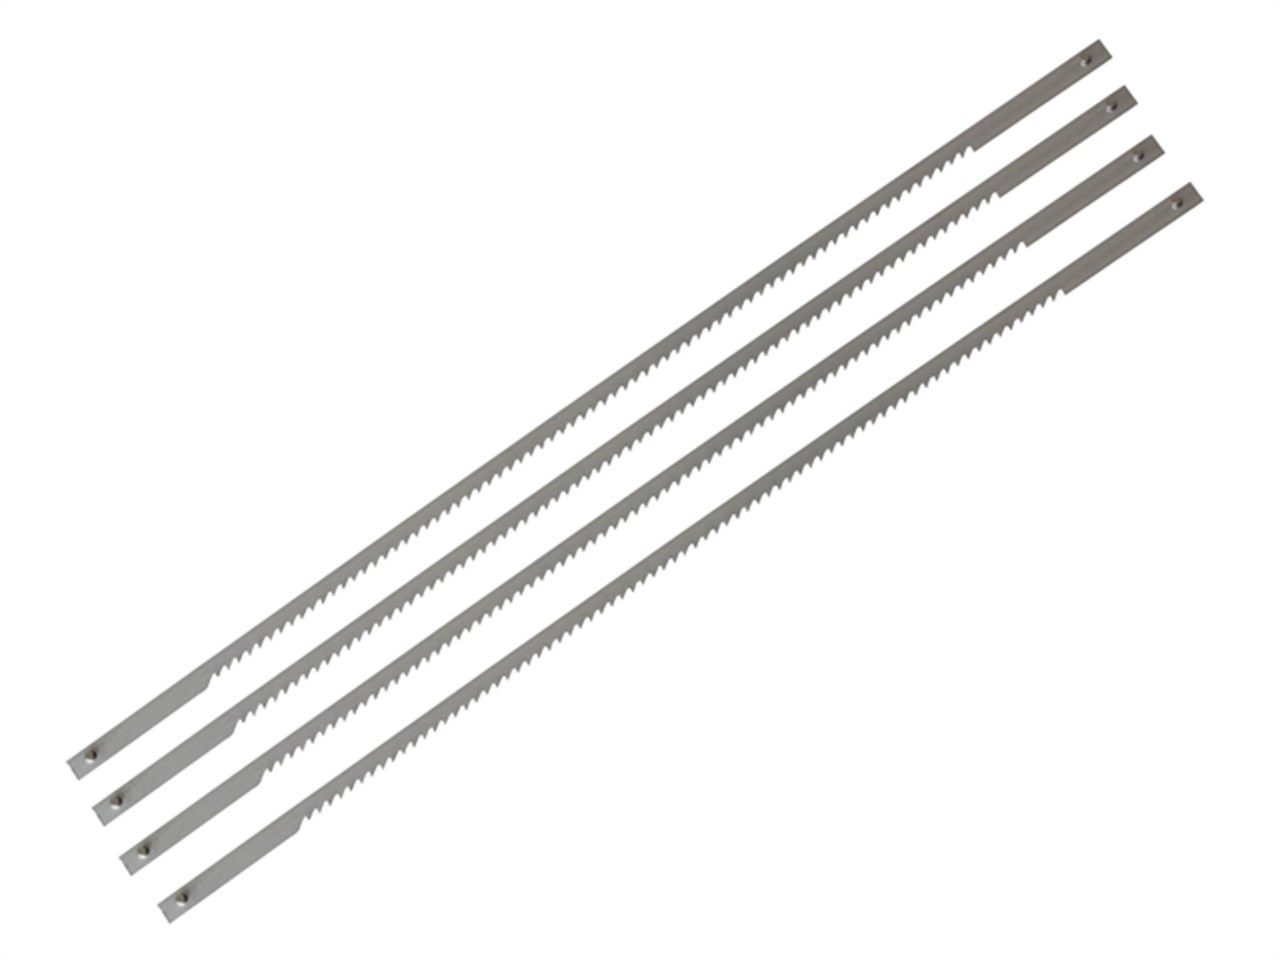 Stanley sta015061 coping saw blades card 4 0 15 061 keyboard keysfo